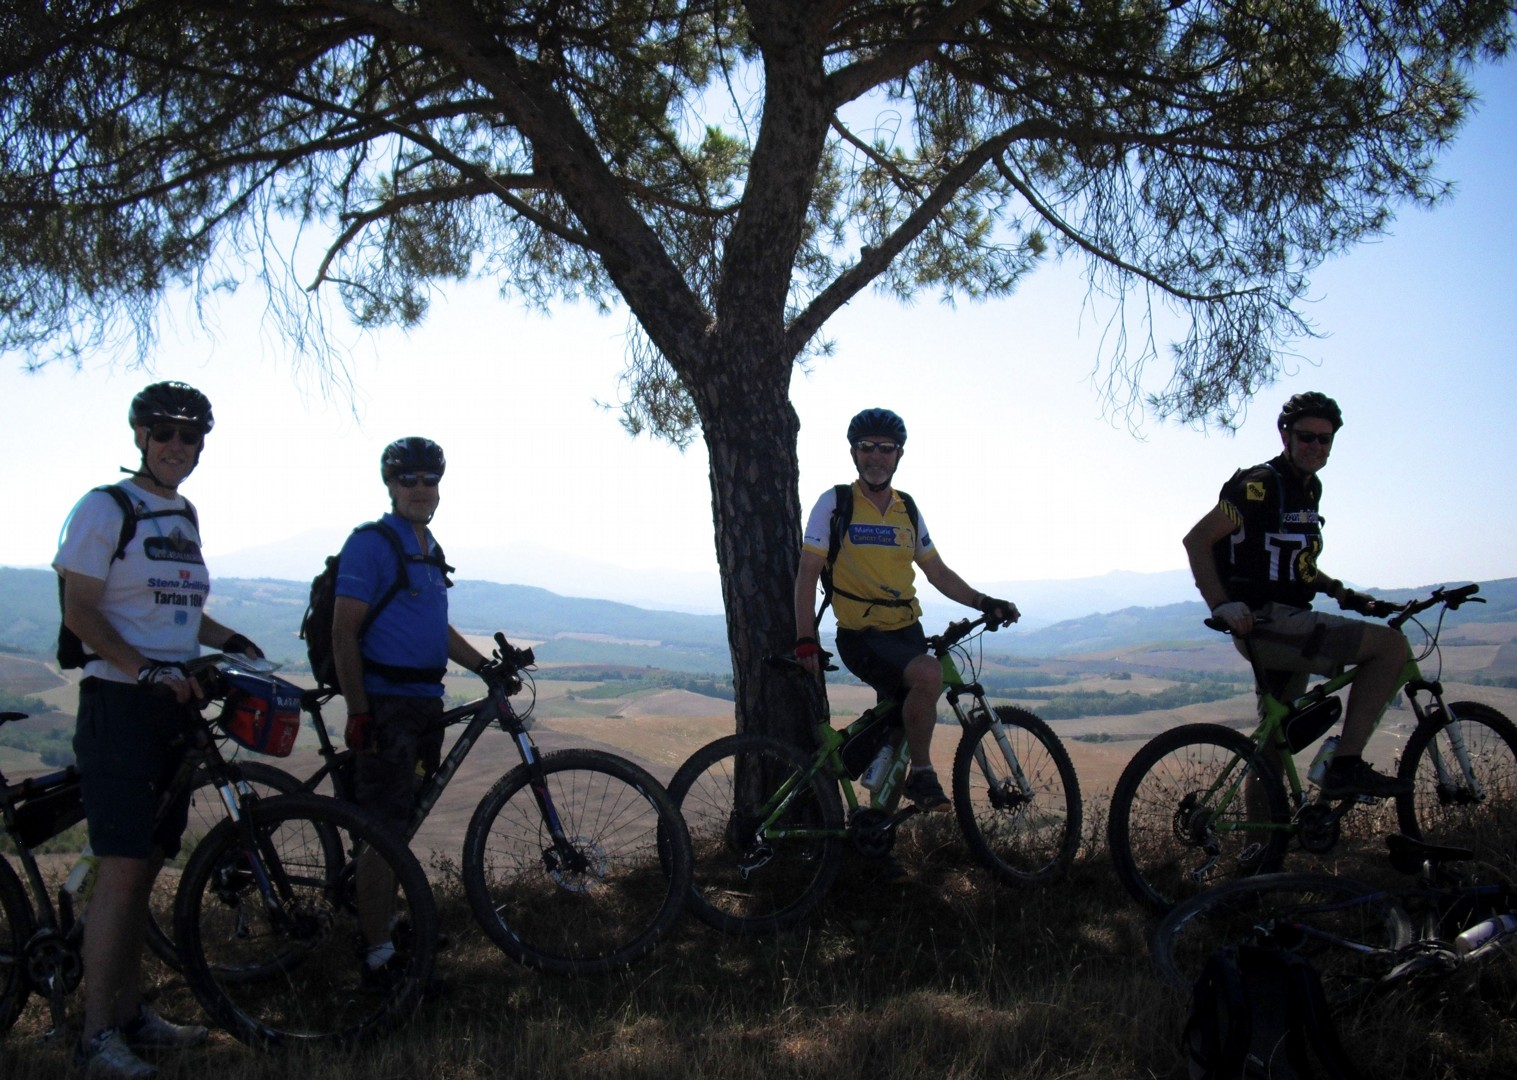 mountain-biking-holiday-tuscany-nature.jpg - Italy - Tuscany - Sacred Routes  - Self Guided Mountain Bike Holiday - Mountain Biking